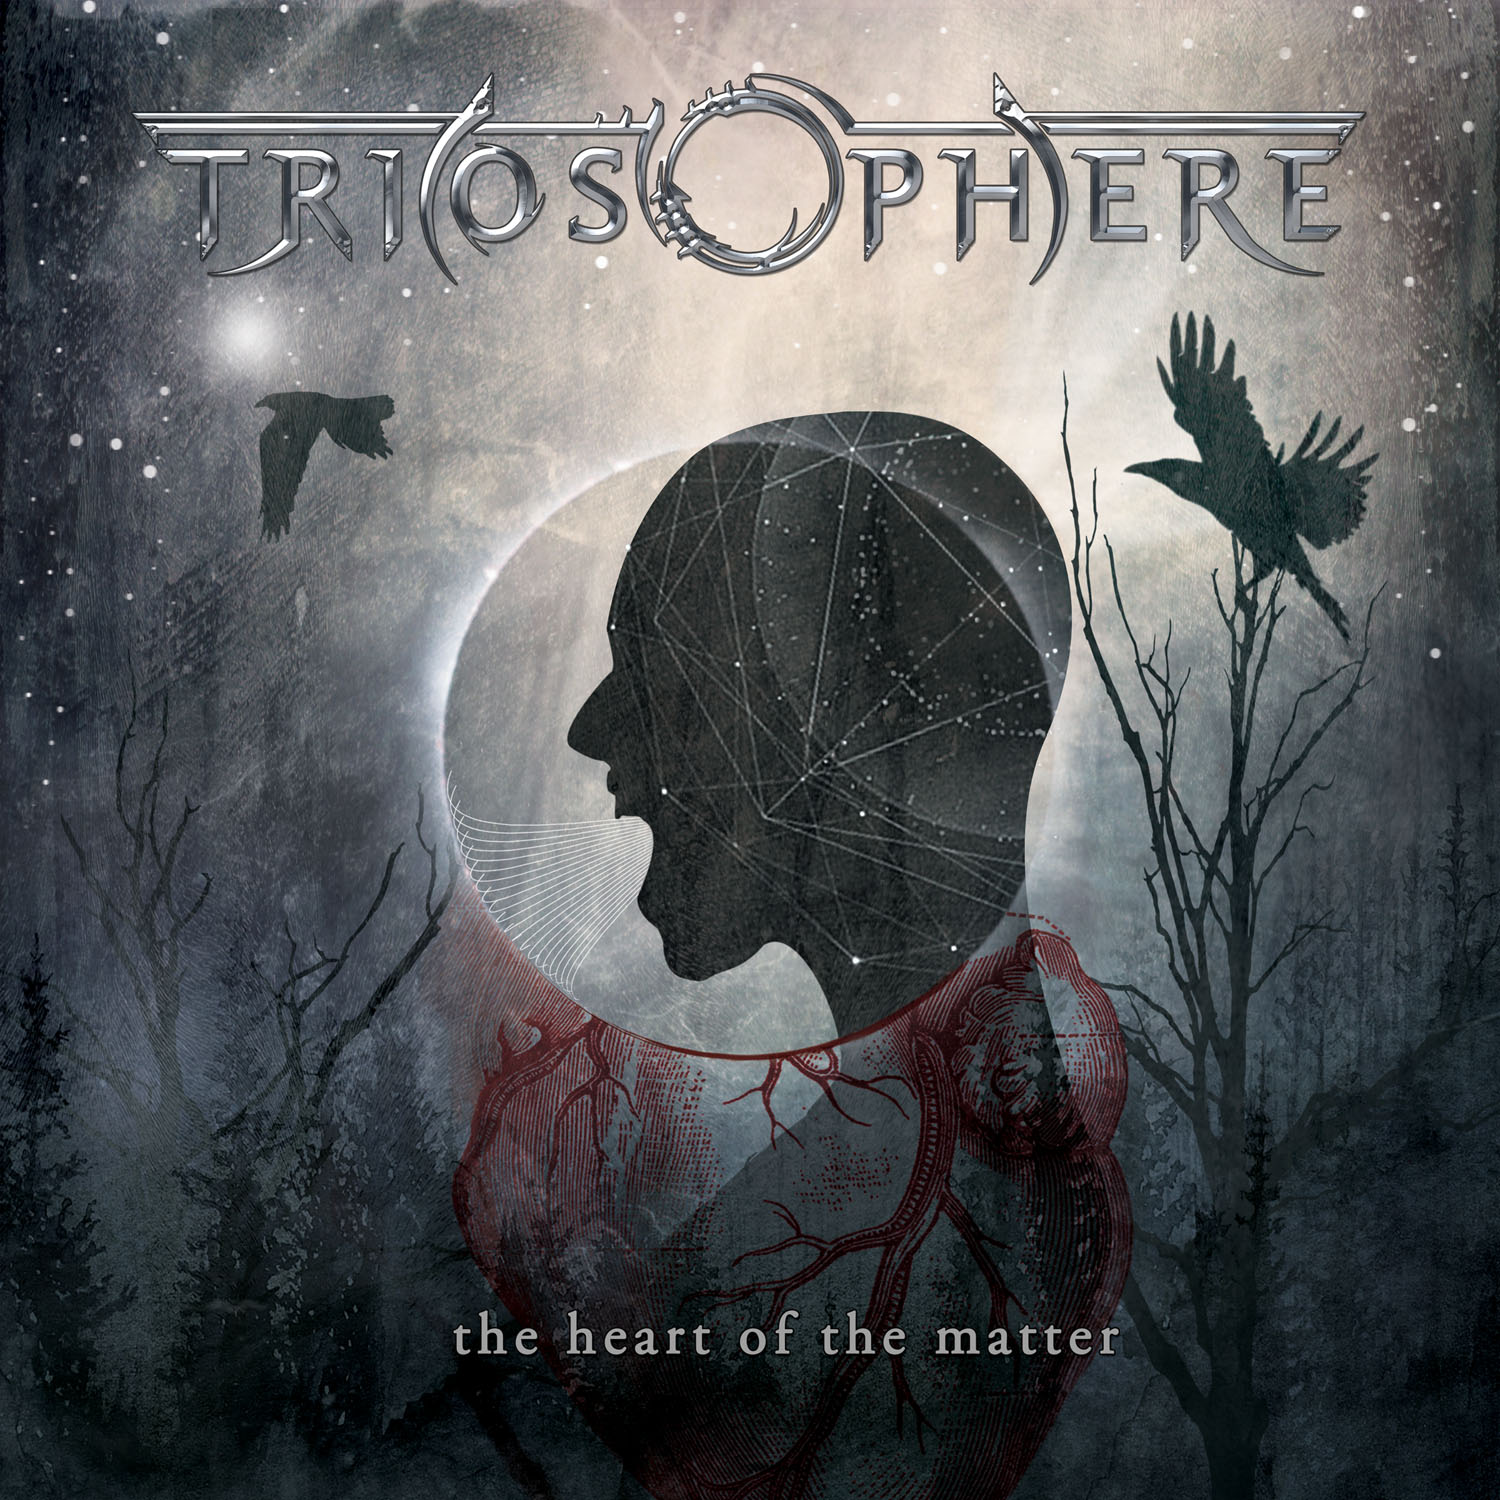 Coverart for Triosphere